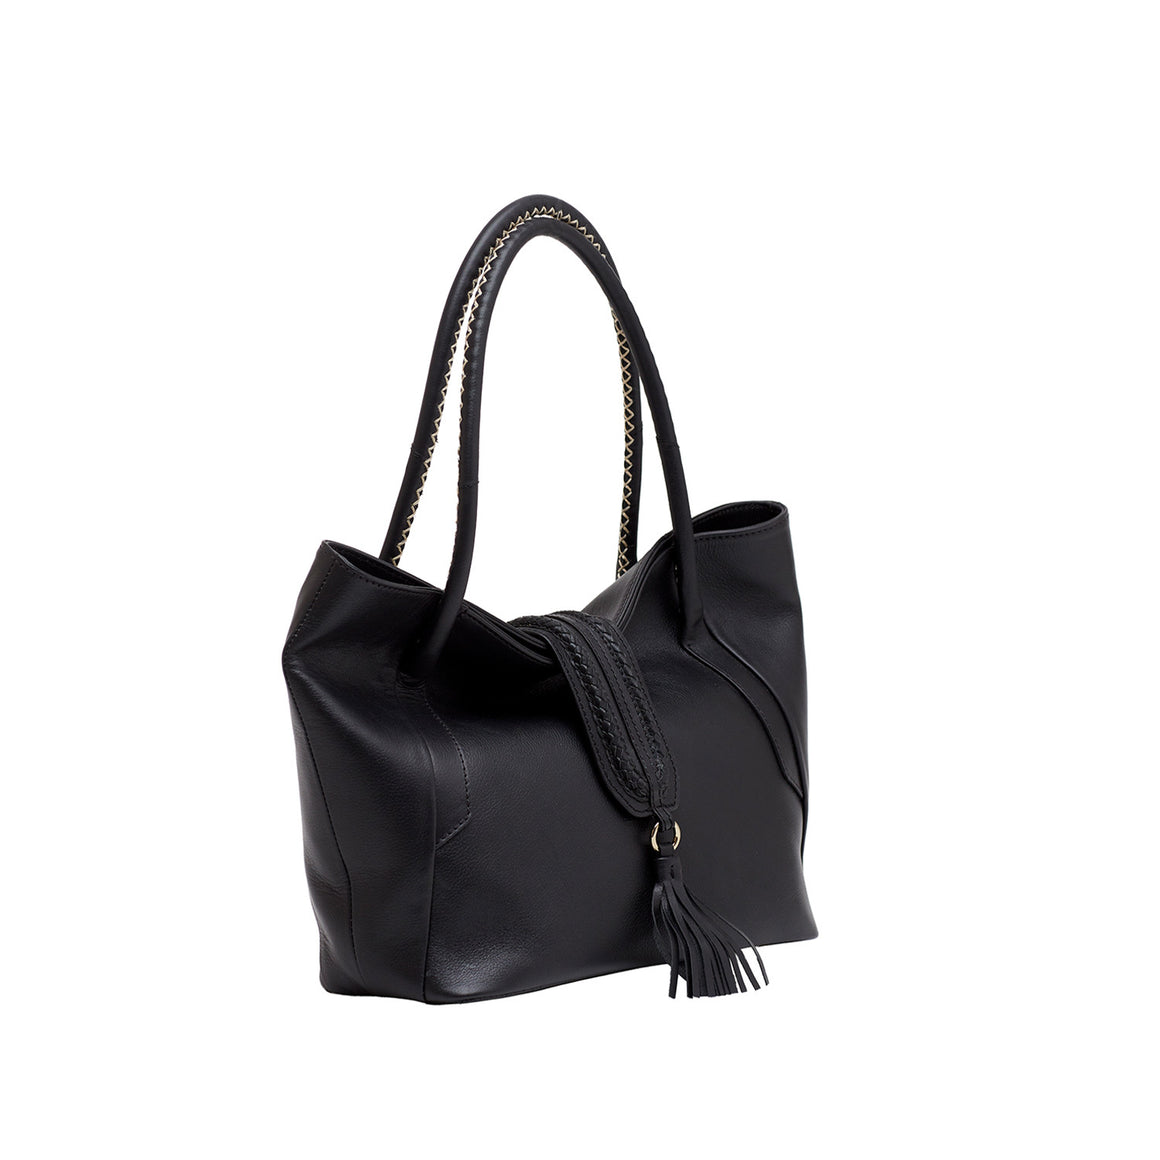 HH 0003 - TOHL ARETHA WOMEN'S SHOULDER BAG - CHARCOAL BLACK